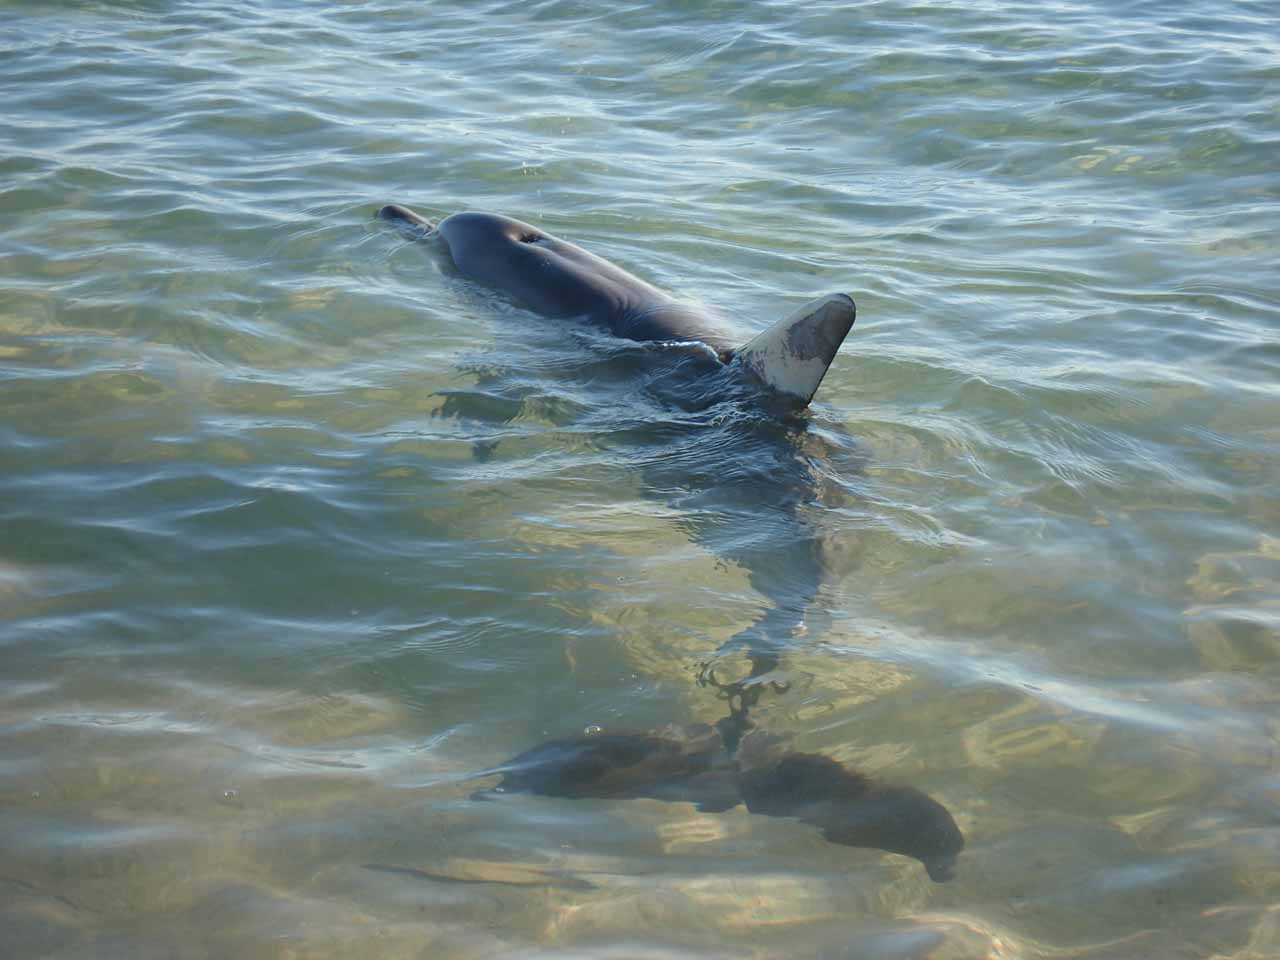 Another dolphin swimming about at Monkey Mia